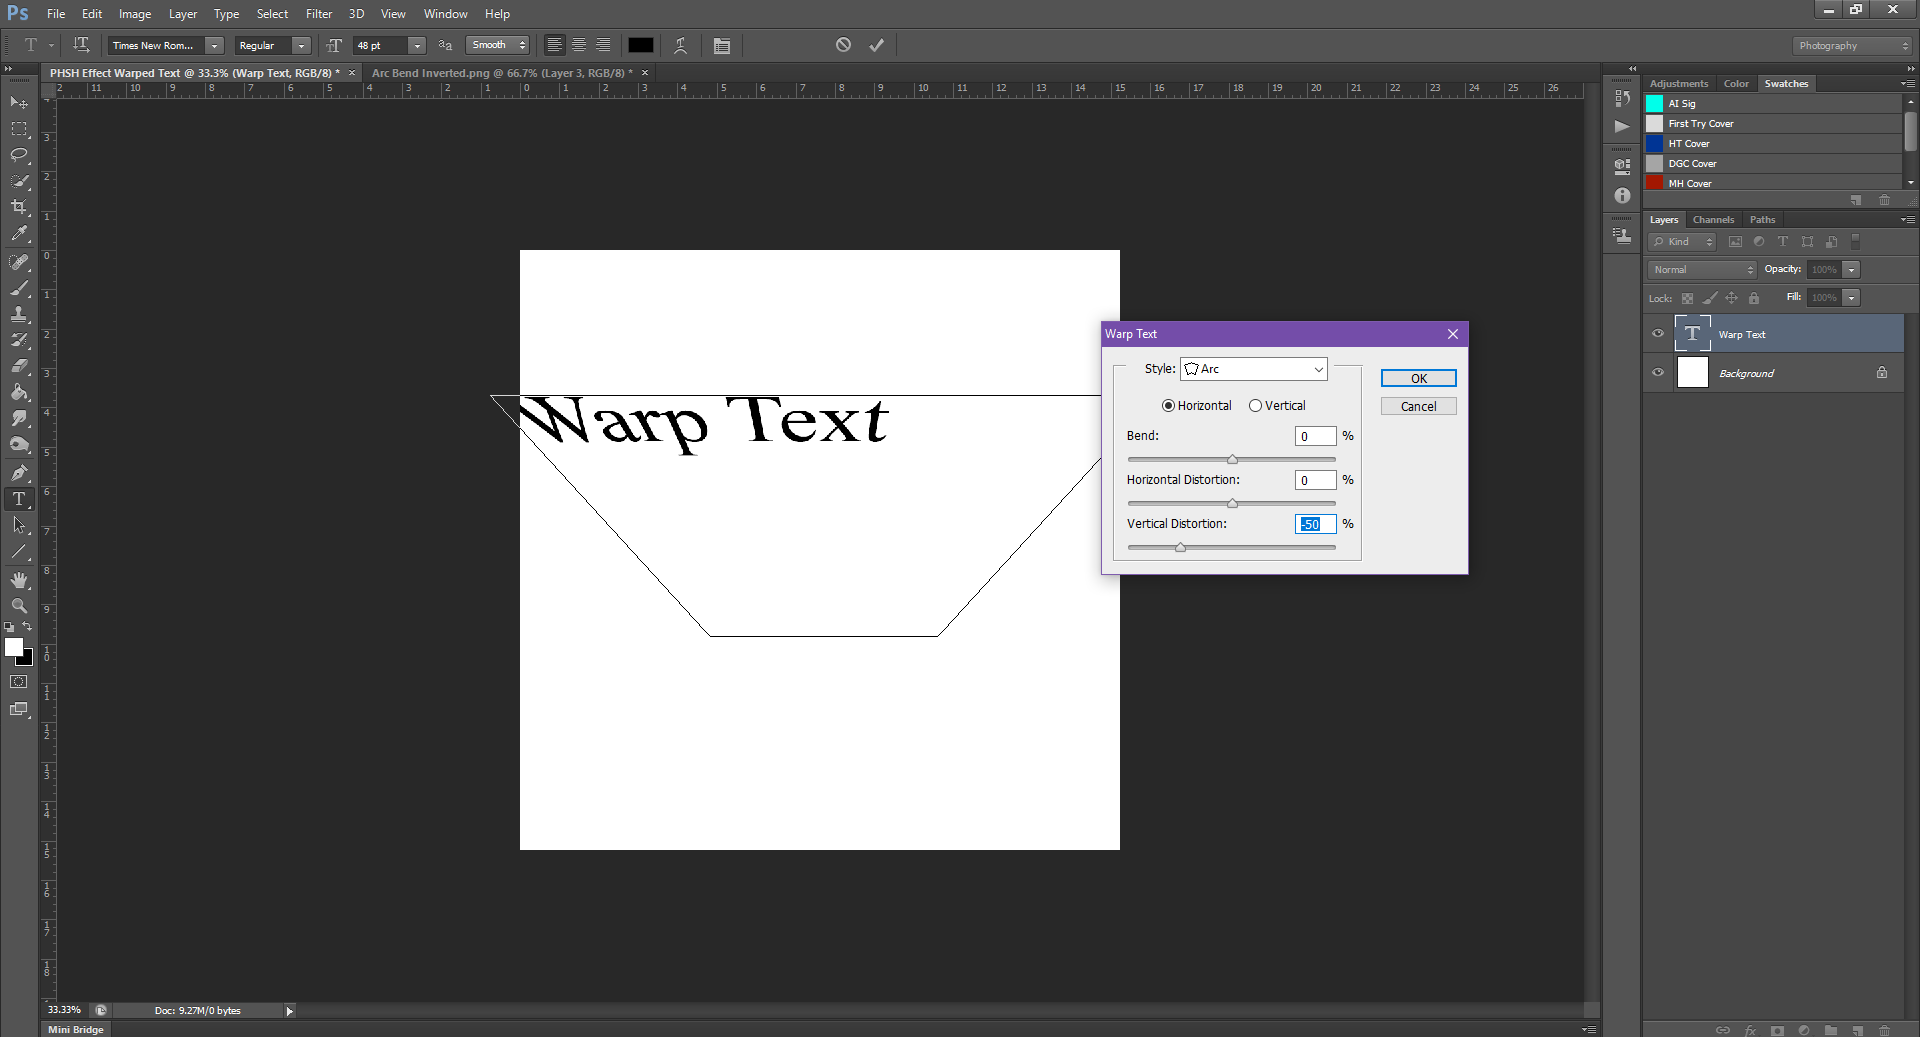 AterImber.com - Writing - Writing Tips - PHSH Tutorial - Warped Text - Vertical Distortion Inverted